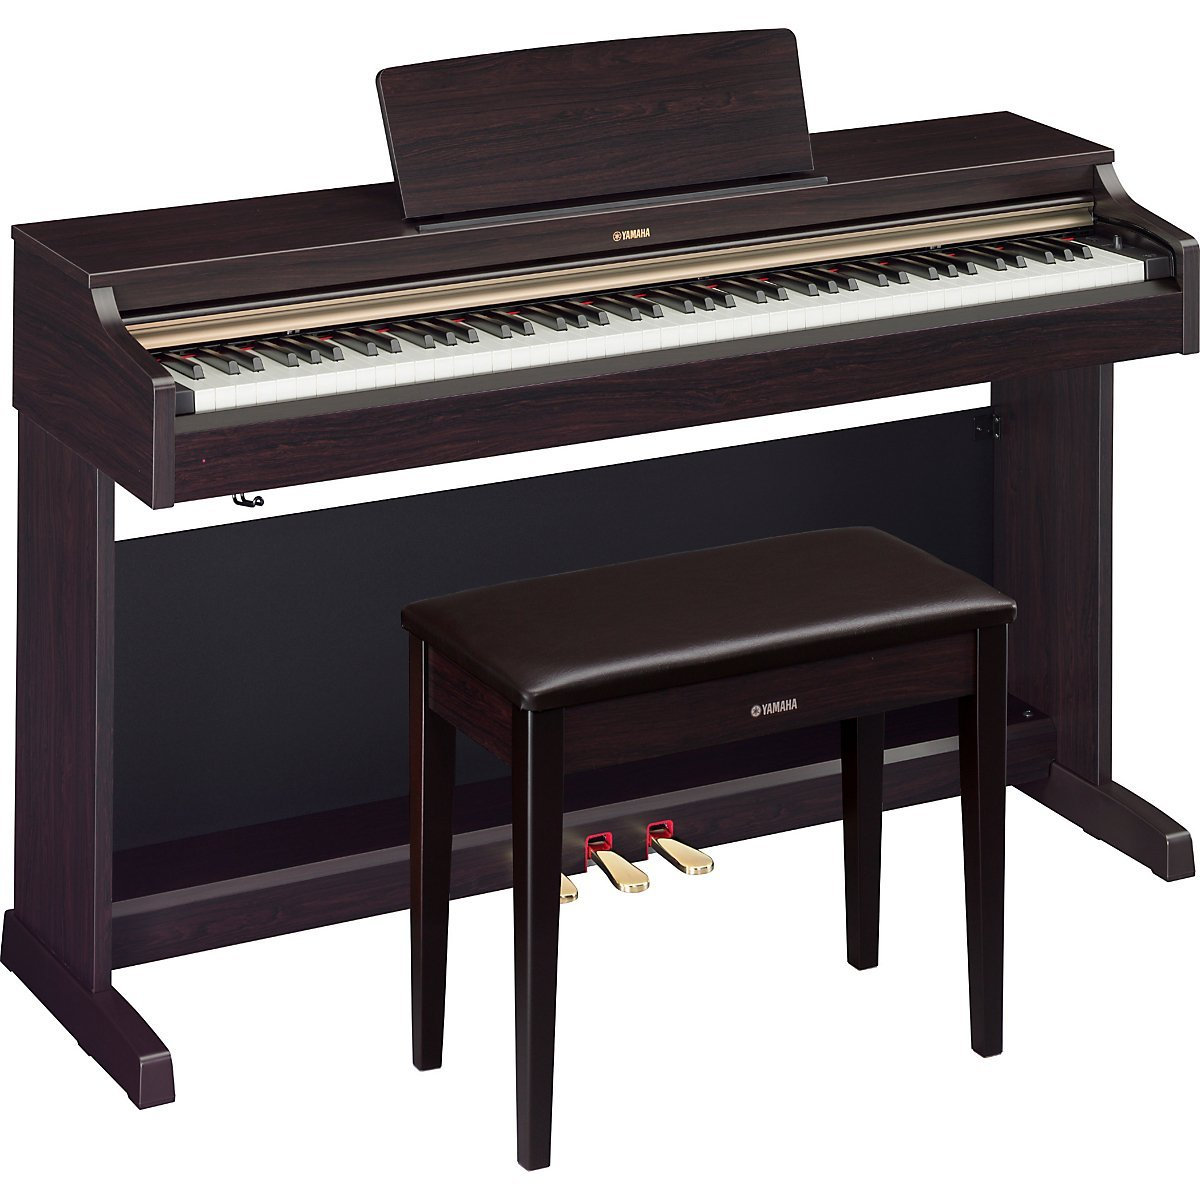 Yamaha arius ydp 162 digital piano review for Yamaha console piano prices